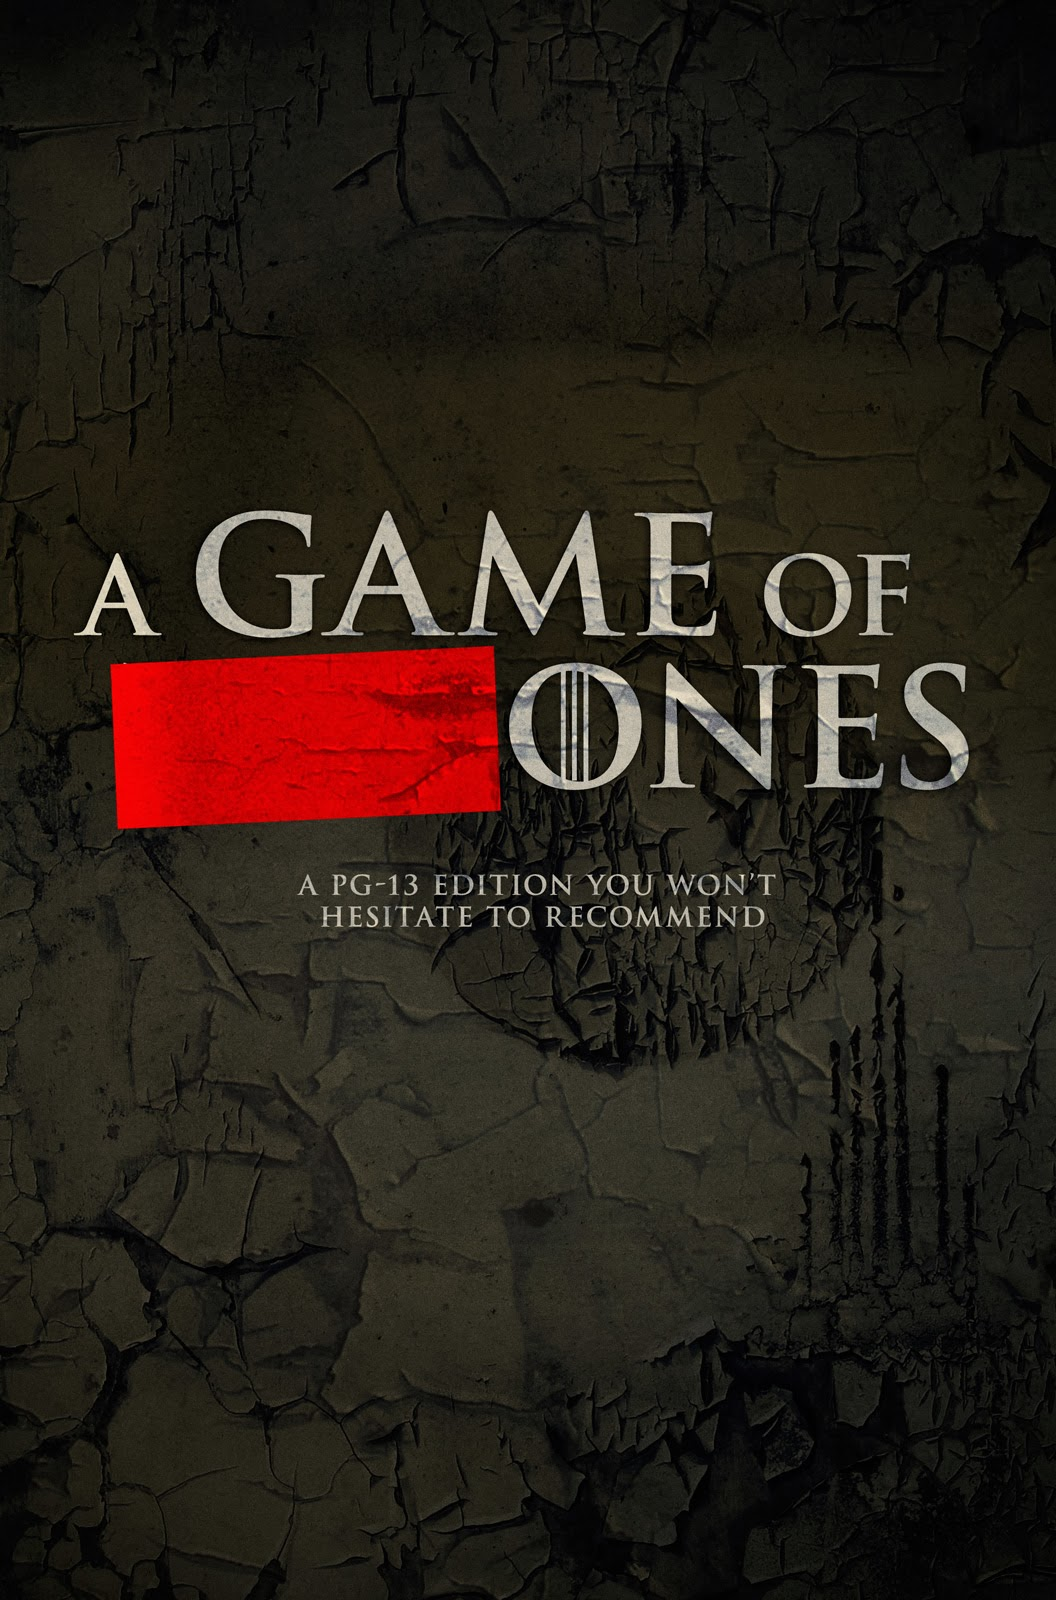 A censored book cover for A Game of Thrones